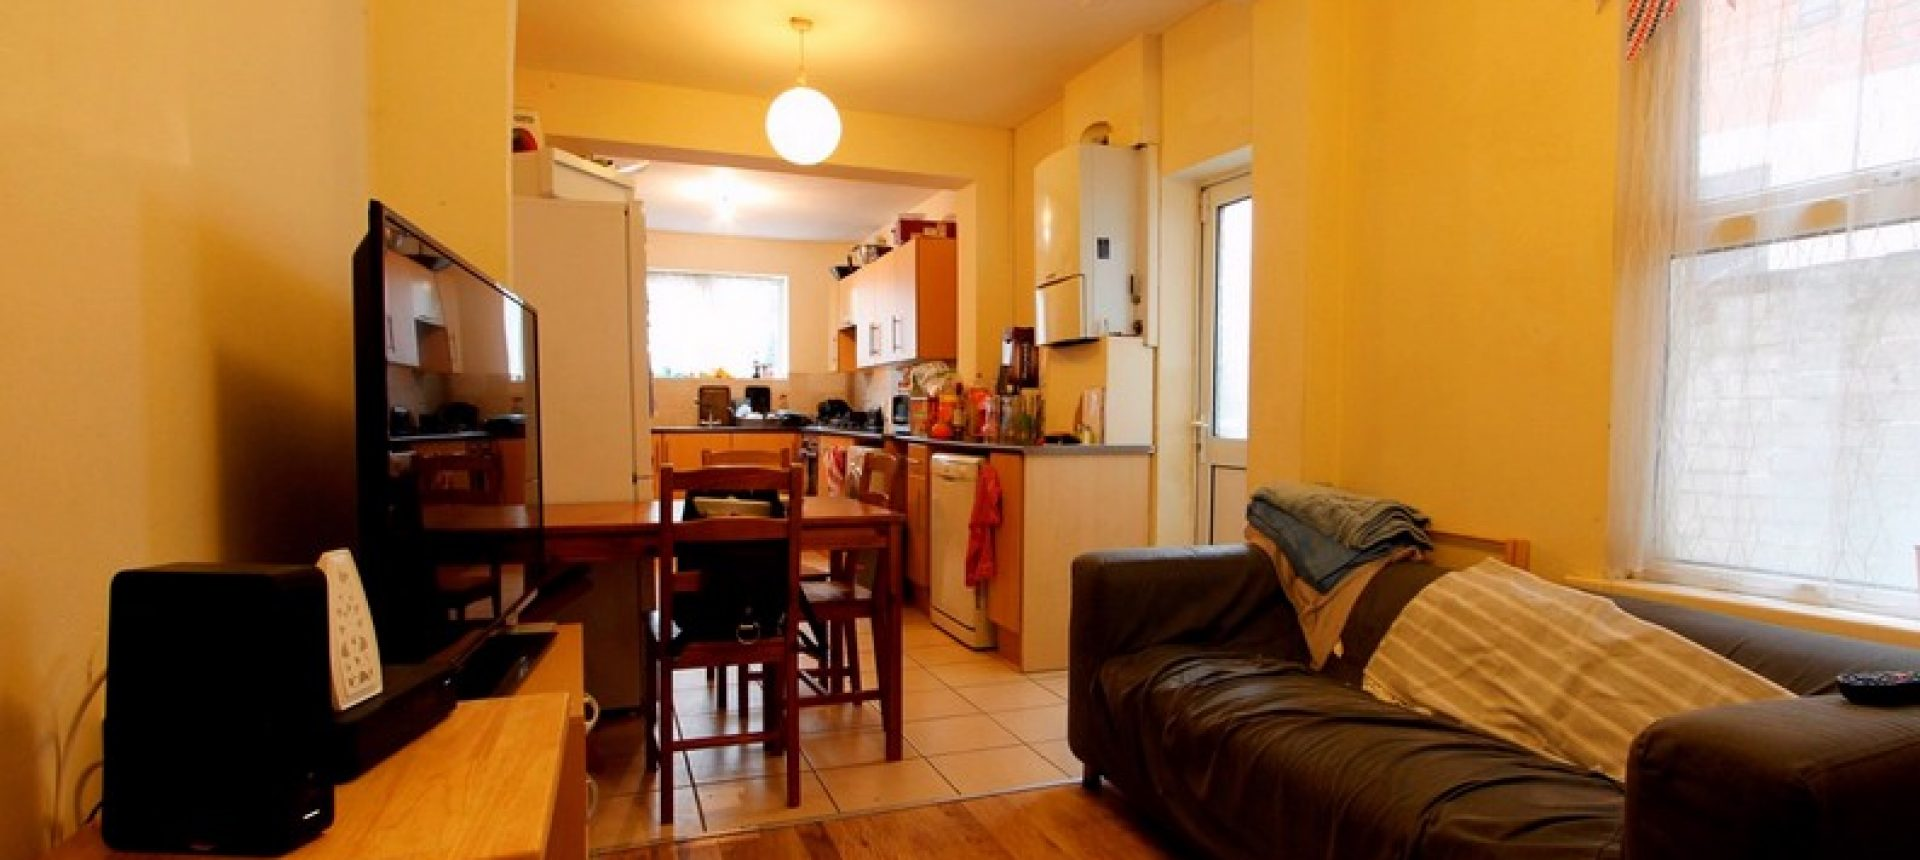 Refurbished, Spacious Superior 7 Double Bed 2 Bath House